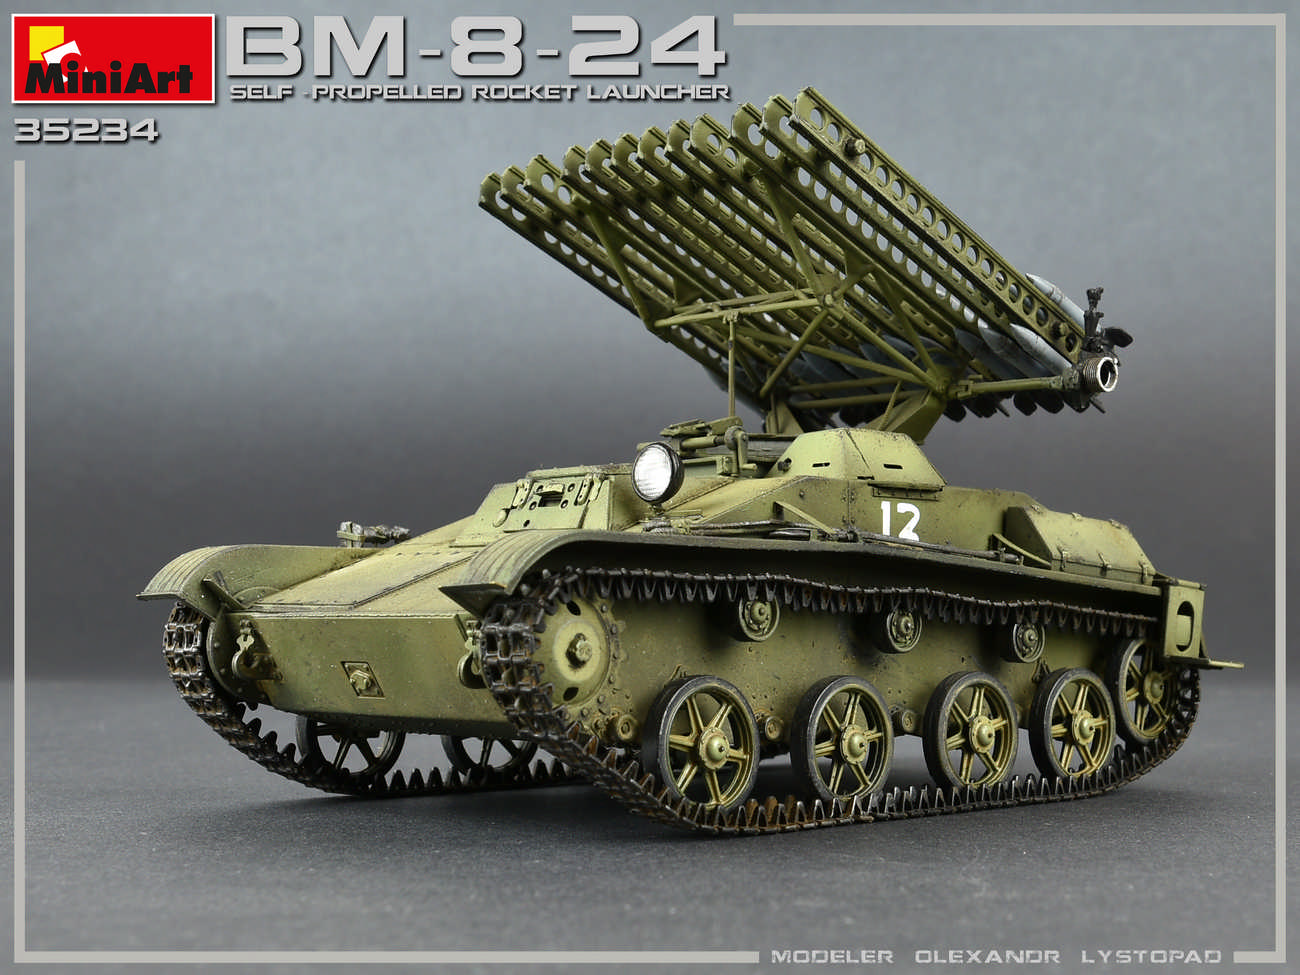 Miniart – 35234 BM-8-24 SELF-PROPELLED ROCKET LAUNCHER